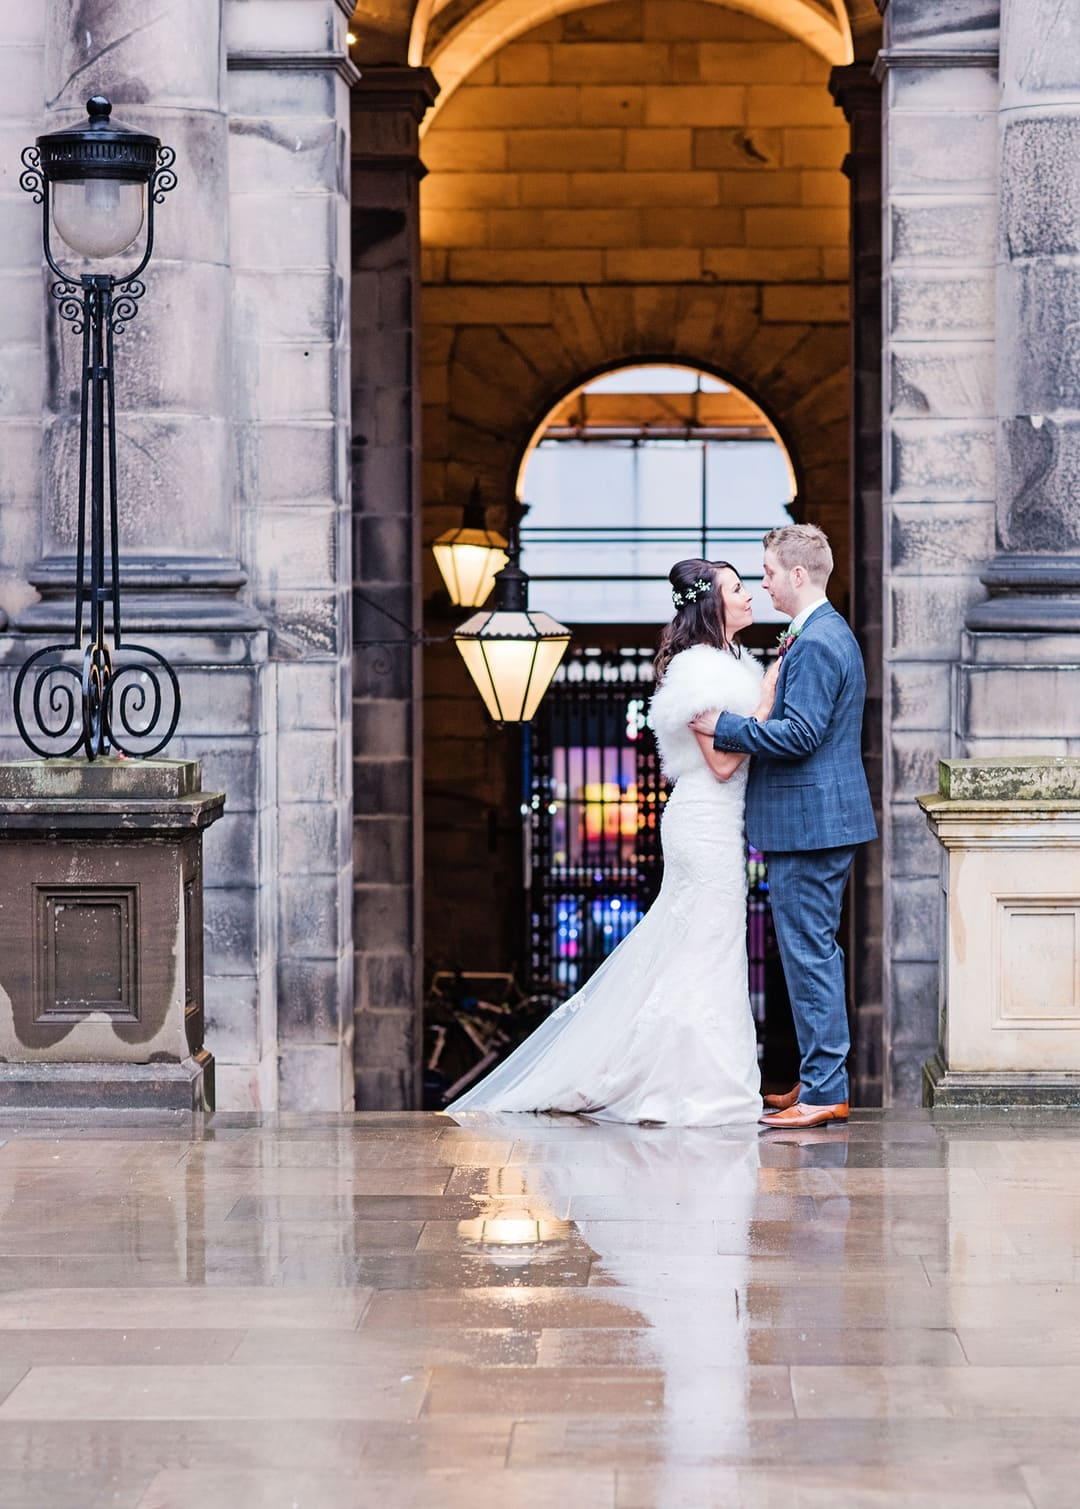 The magic rain brings are enchanting reflections on the wet surfaces, Playfair Library Wedding Venue Edinburgh